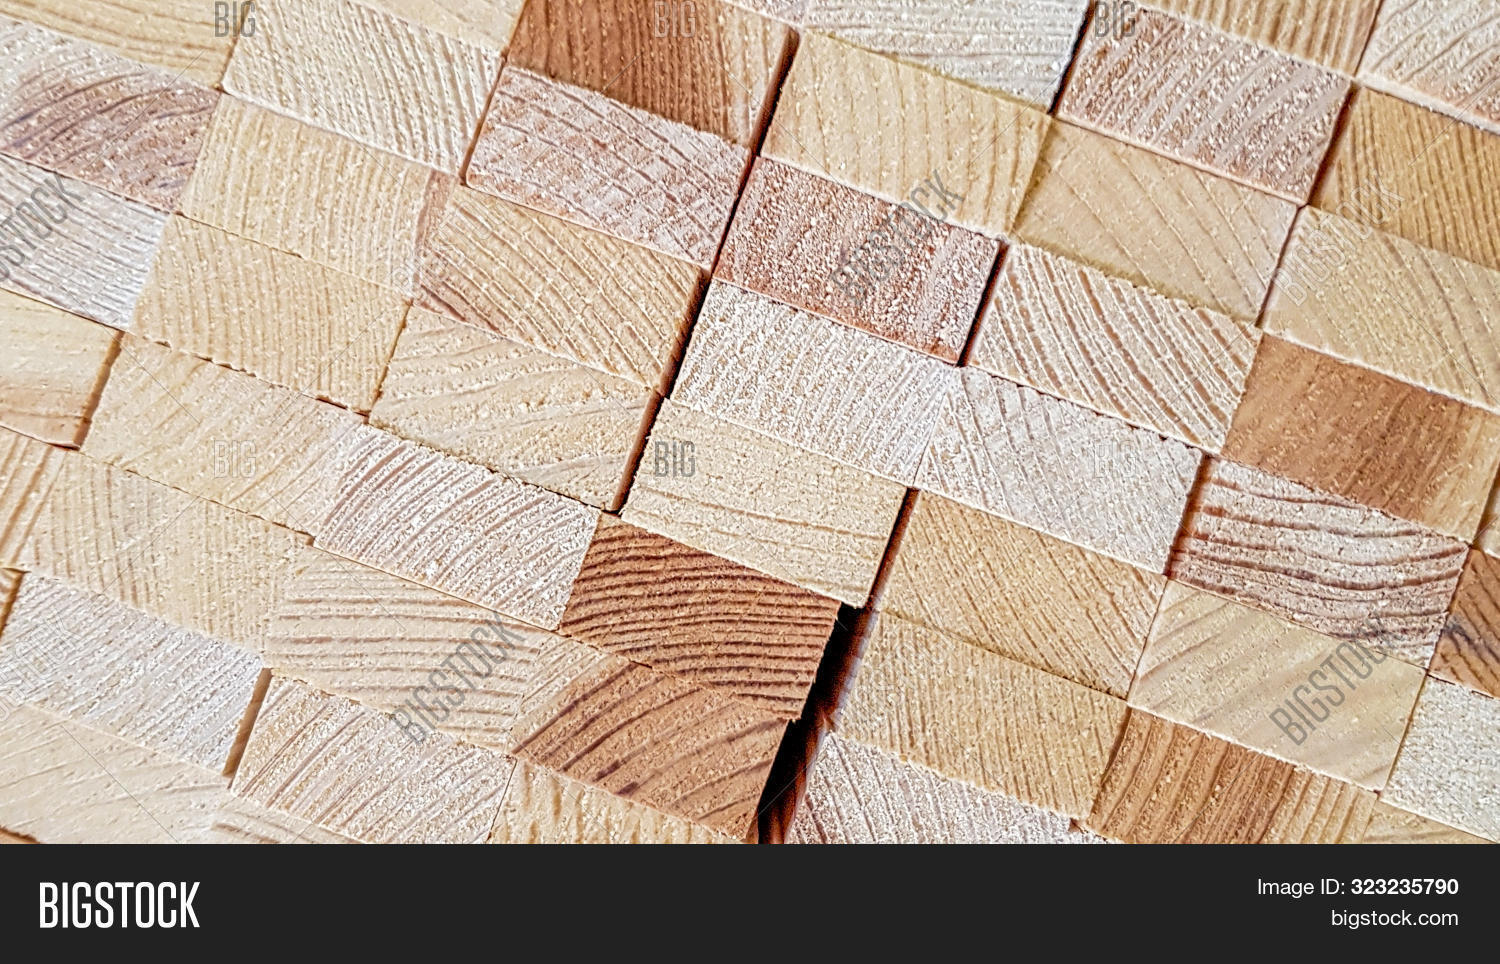 backdrop,background,balk,beam,block,board,business,close-up,closeup,conifer,coniferous,construction,cut,detail,drying,edge,end,firewood,forestry,glued,heap,industrial,industry,log,lumber,material,natural,nature,new,pile,pine,plank,raw,rough,saw-mill,sawmill,softwood,square,stack,striped,structure,surface,texture,timber,tree,wall,wood,wooden,woodpile,woodwork